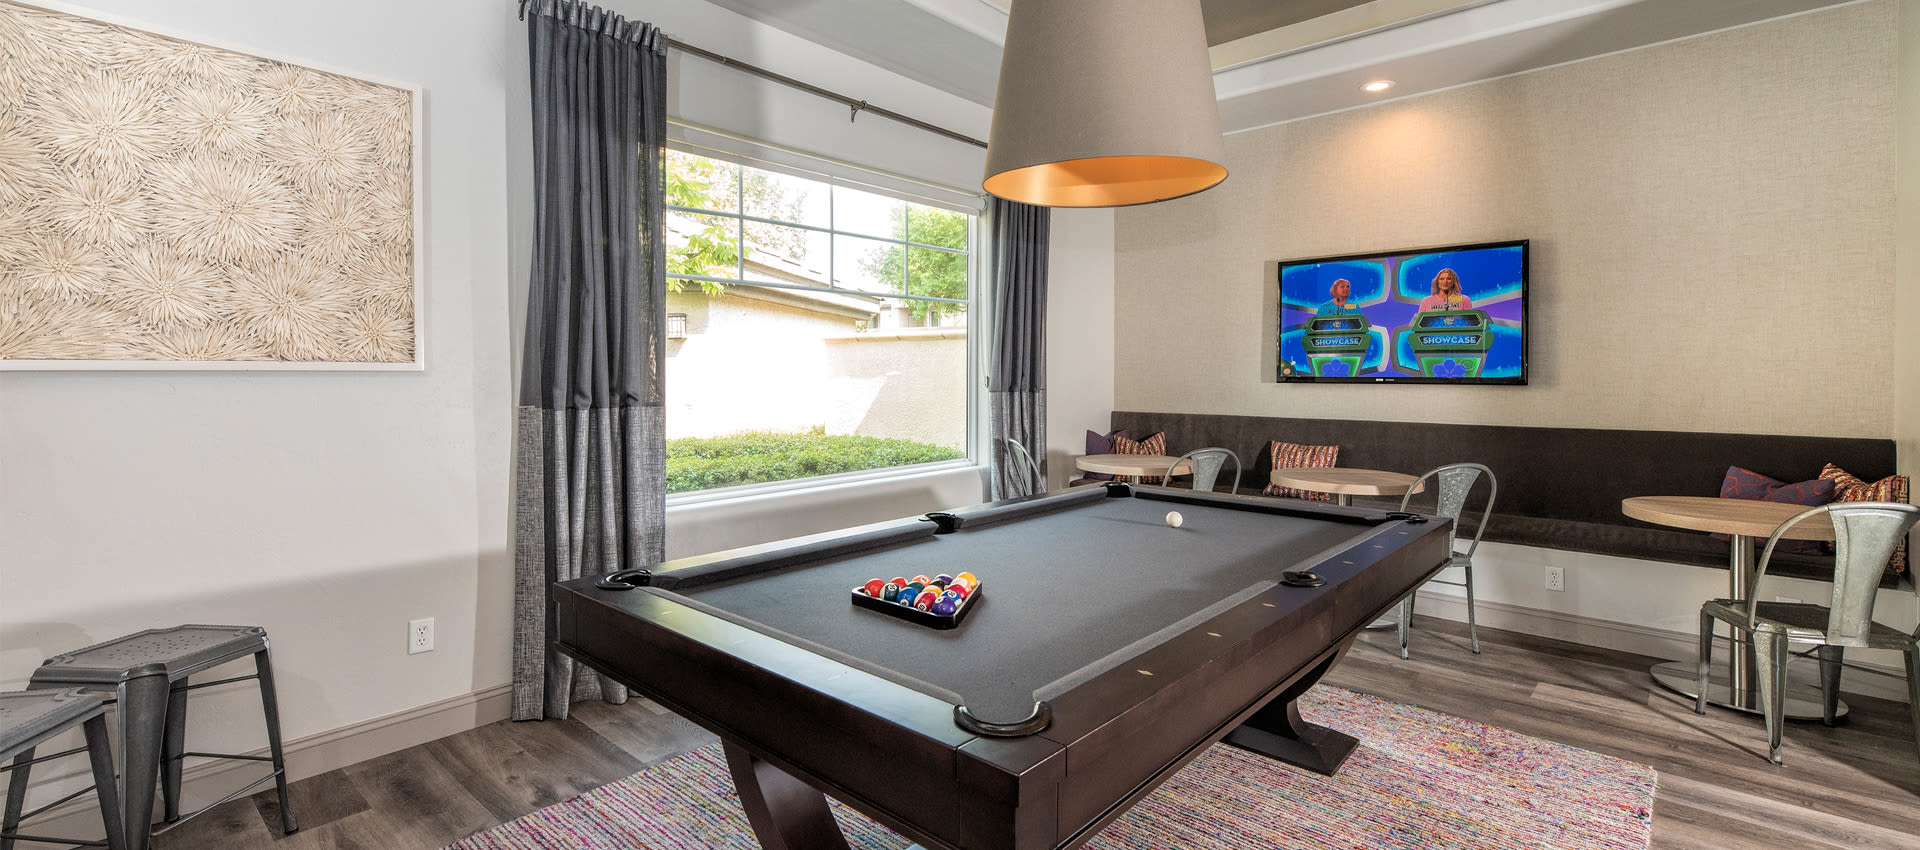 Residents Game Lounge at The Artisan Apartment Homes in Sacramento, California